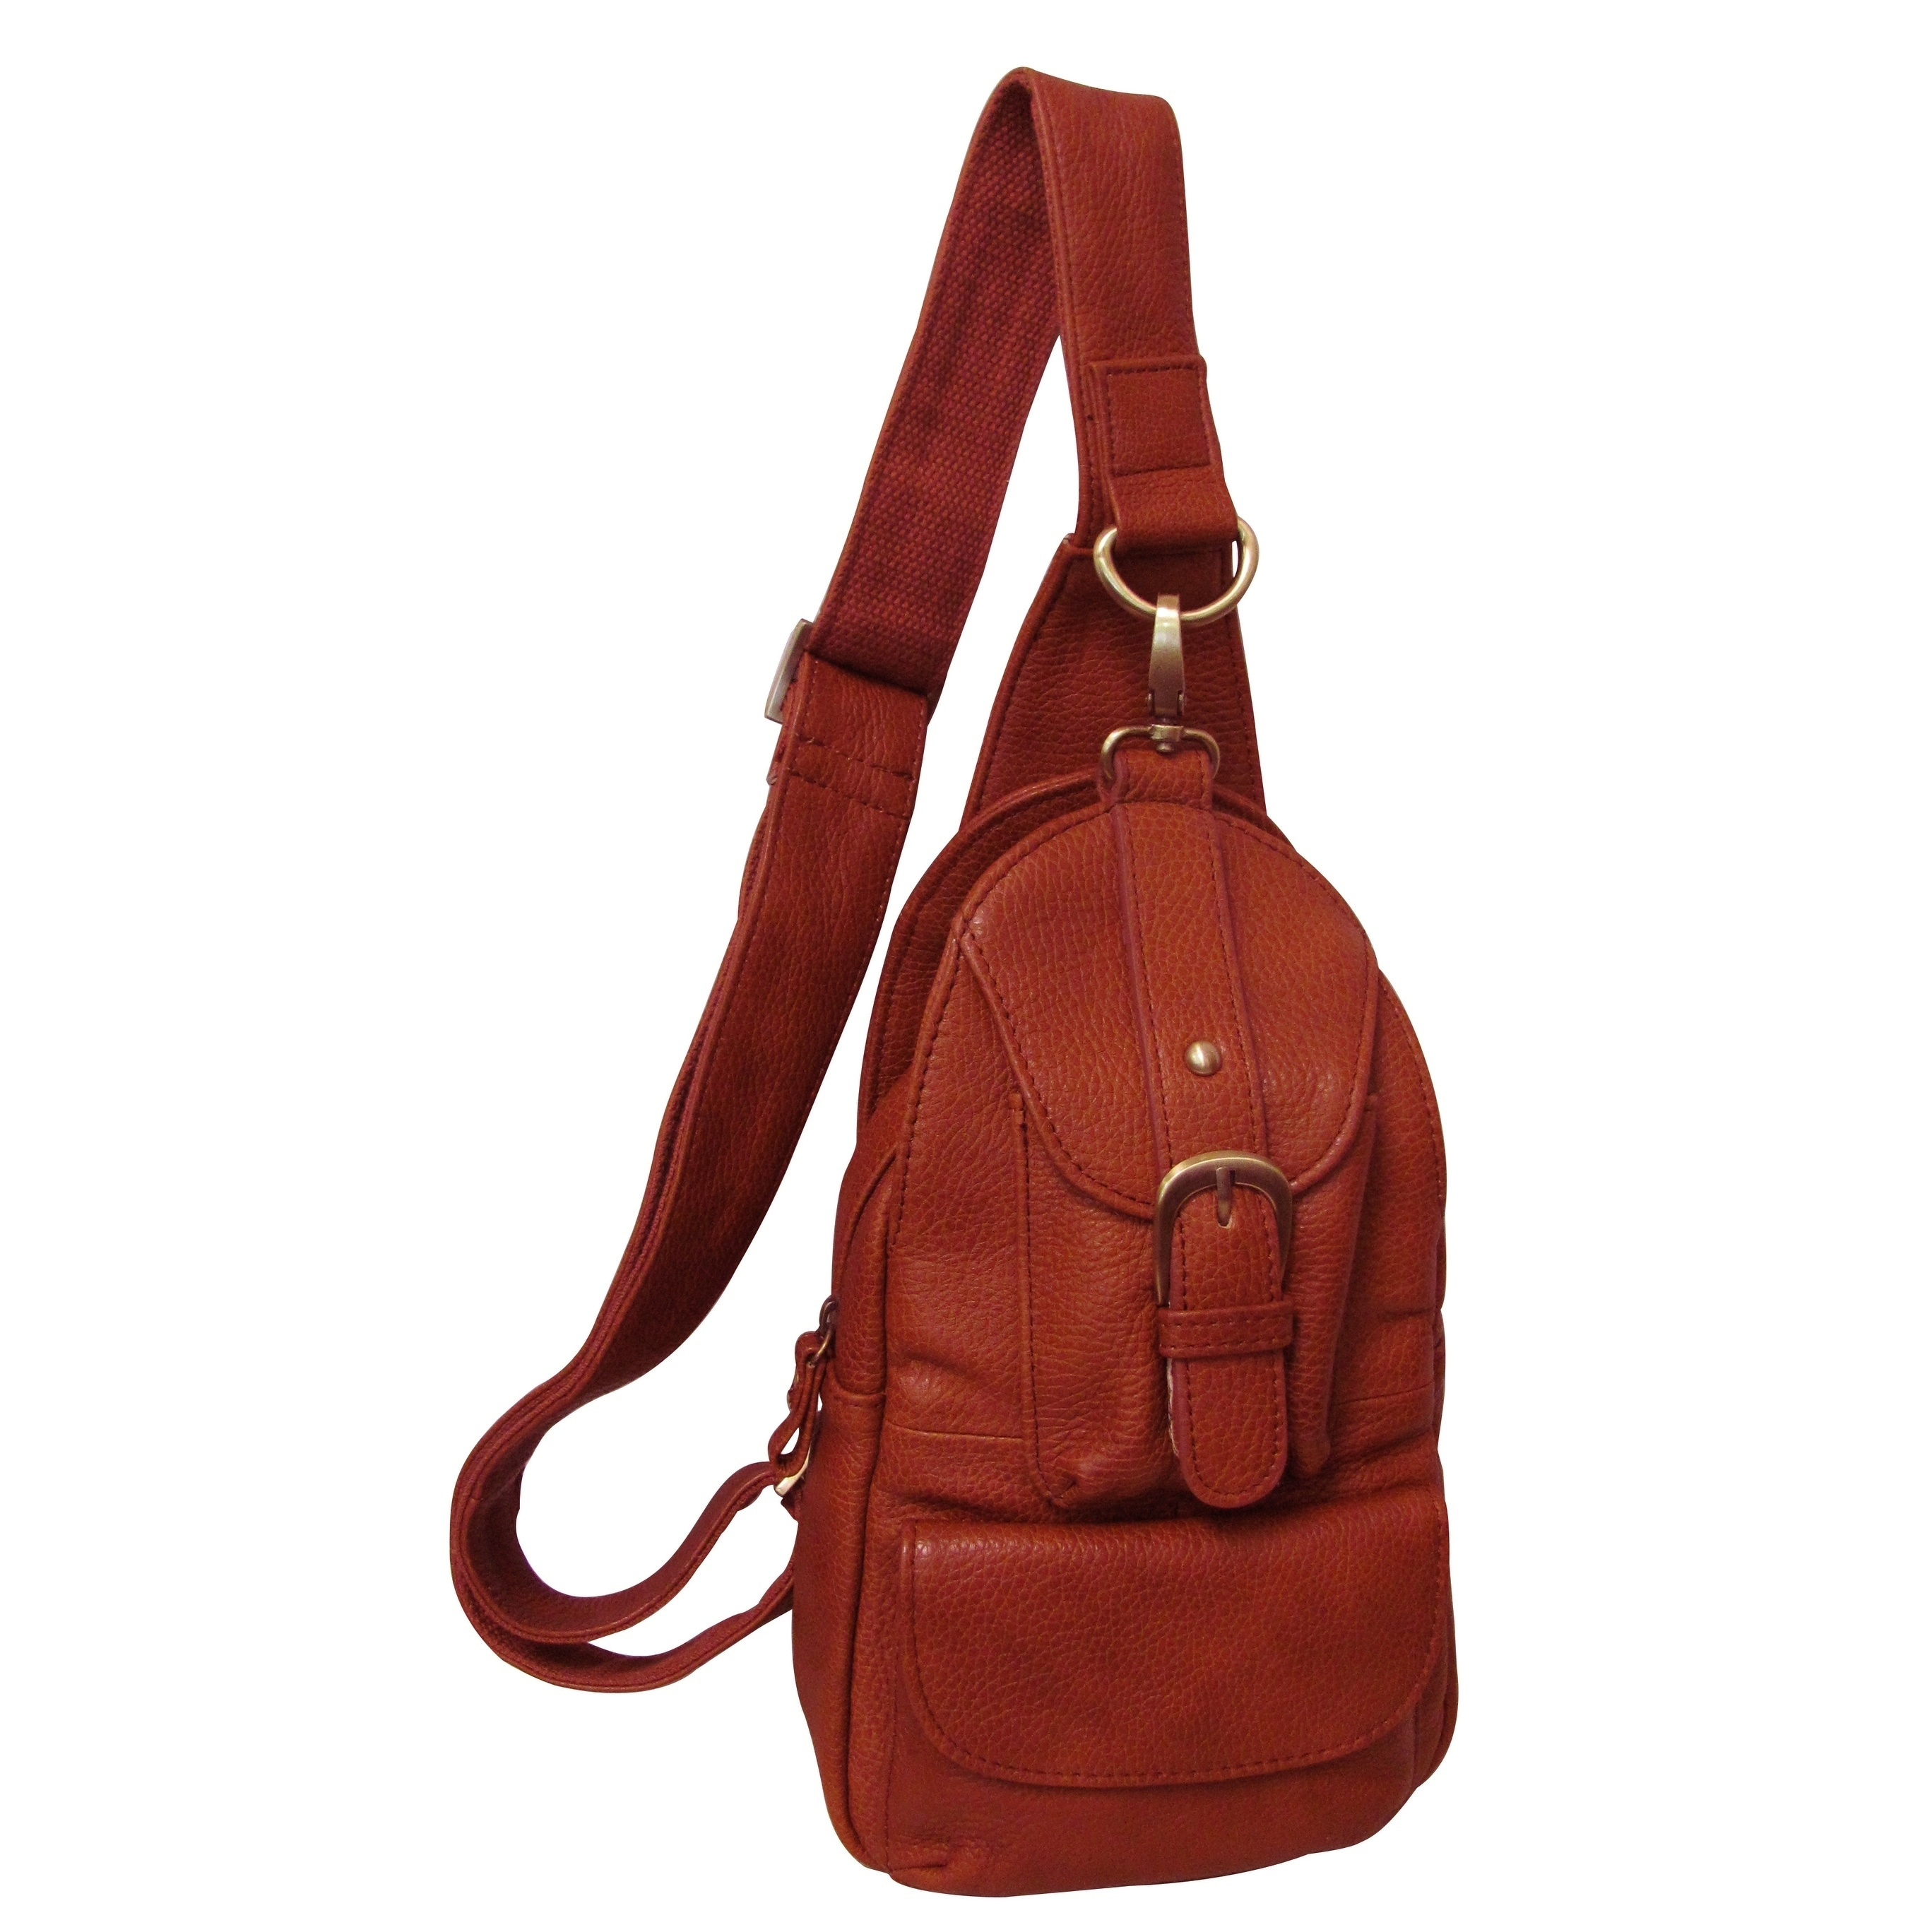 c24a9296b5d9 Shop Amerileather Grylls Petite Cowhide Leather Multi-pocket Sling Backpack  - On Sale - Free Shipping Today - Overstock - 5967446